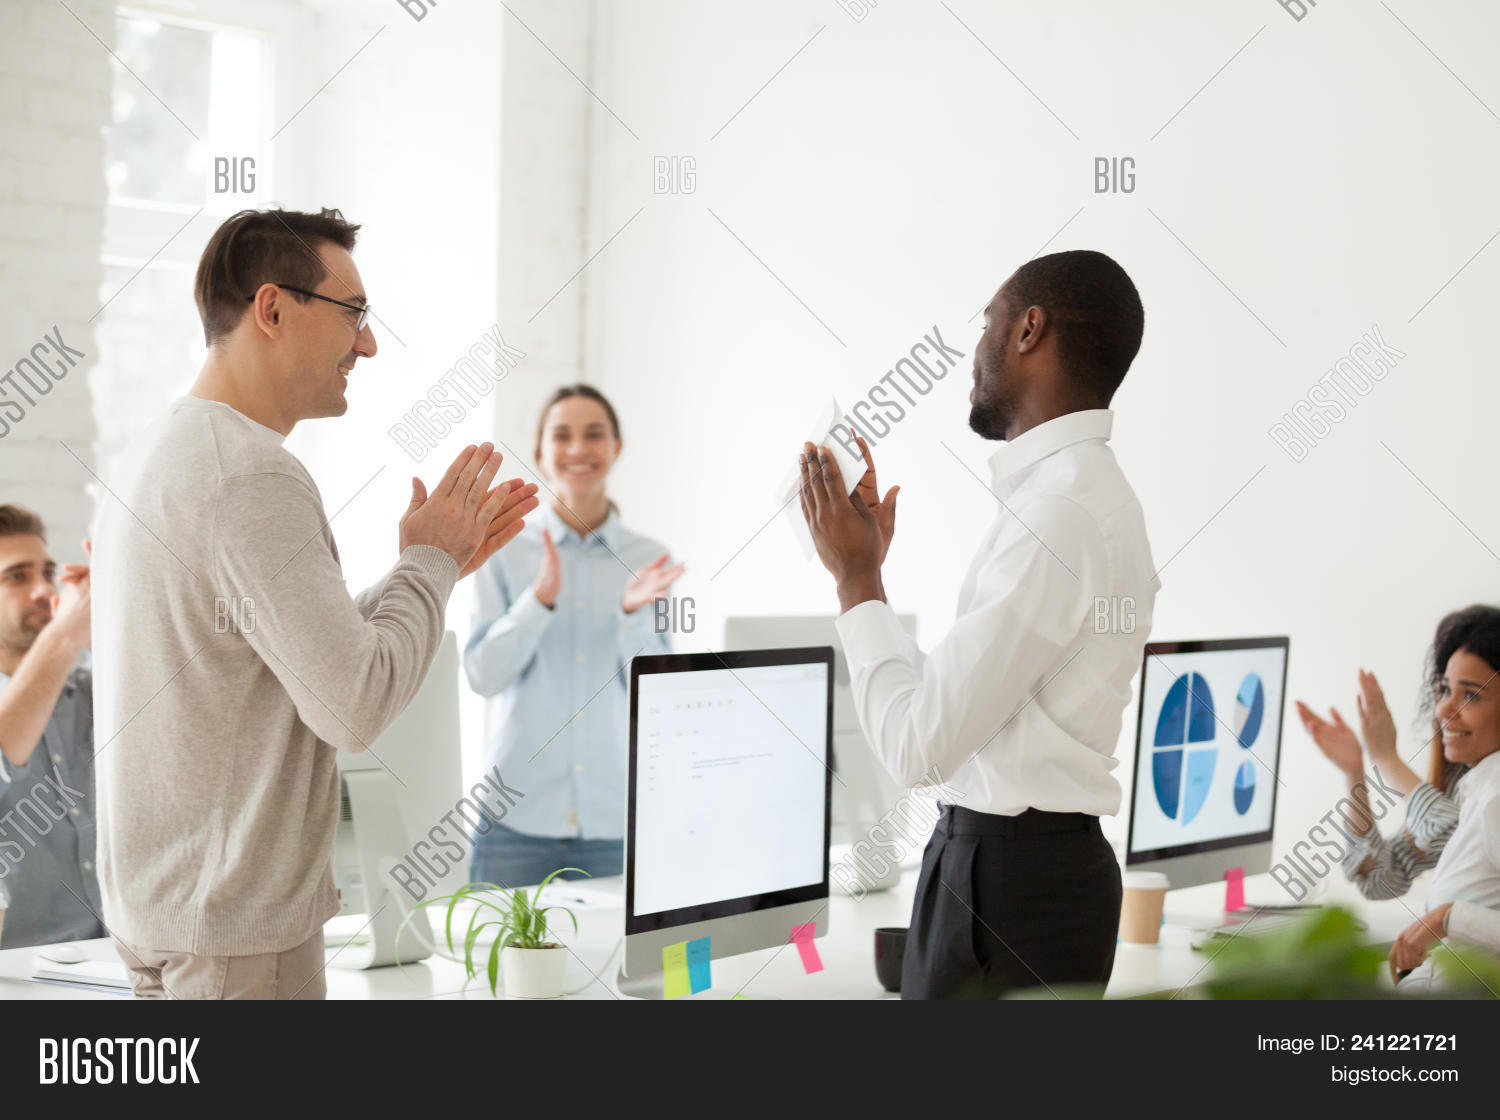 achievement,african-american,applause,appreciation,benefits,black,bonus,boss,business,businessman,career,clapping,colleagues,company,congratulate,corporate,diversity,employee,envelope,excited,executive,good,gratitude,hands,happy,job,leader,man,manager,meeting,money,motivation,multiracial,office,people,person,professional,promotion,recognition,respect,result,reward,smiling,successful,support,team,thanking,trust,work,worker